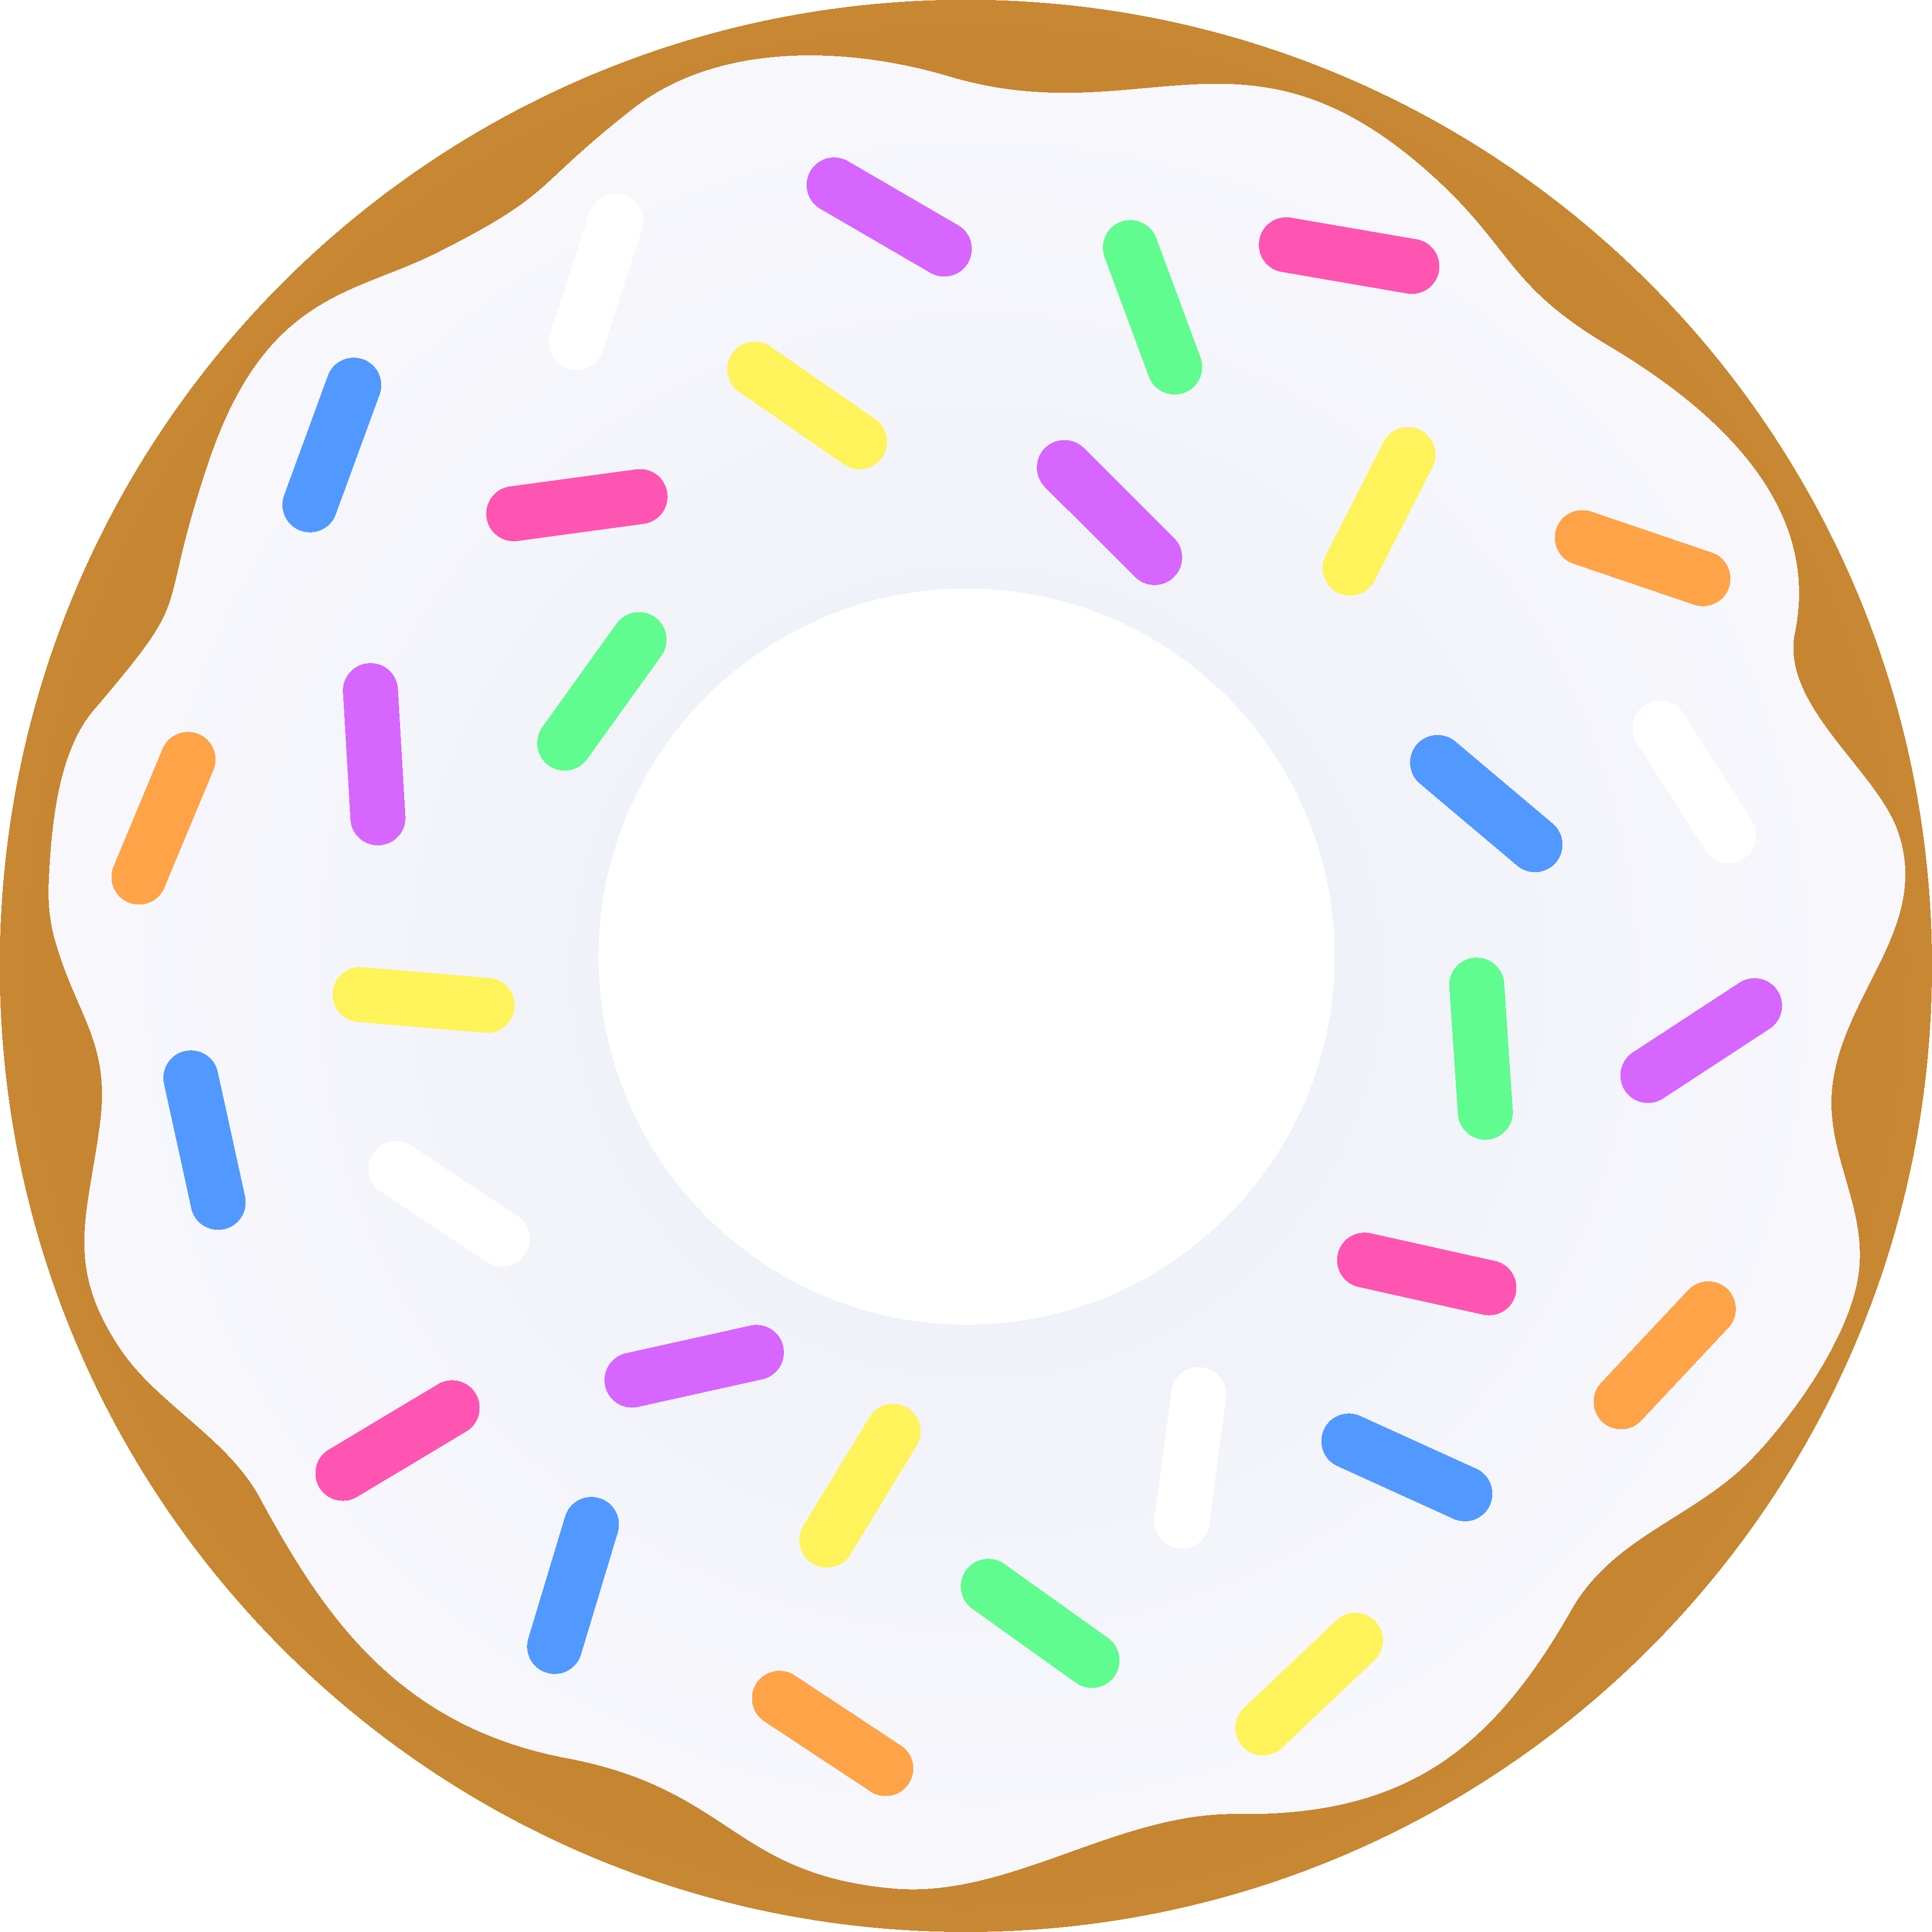 Sprinkles clipart round. Free donuts download clip